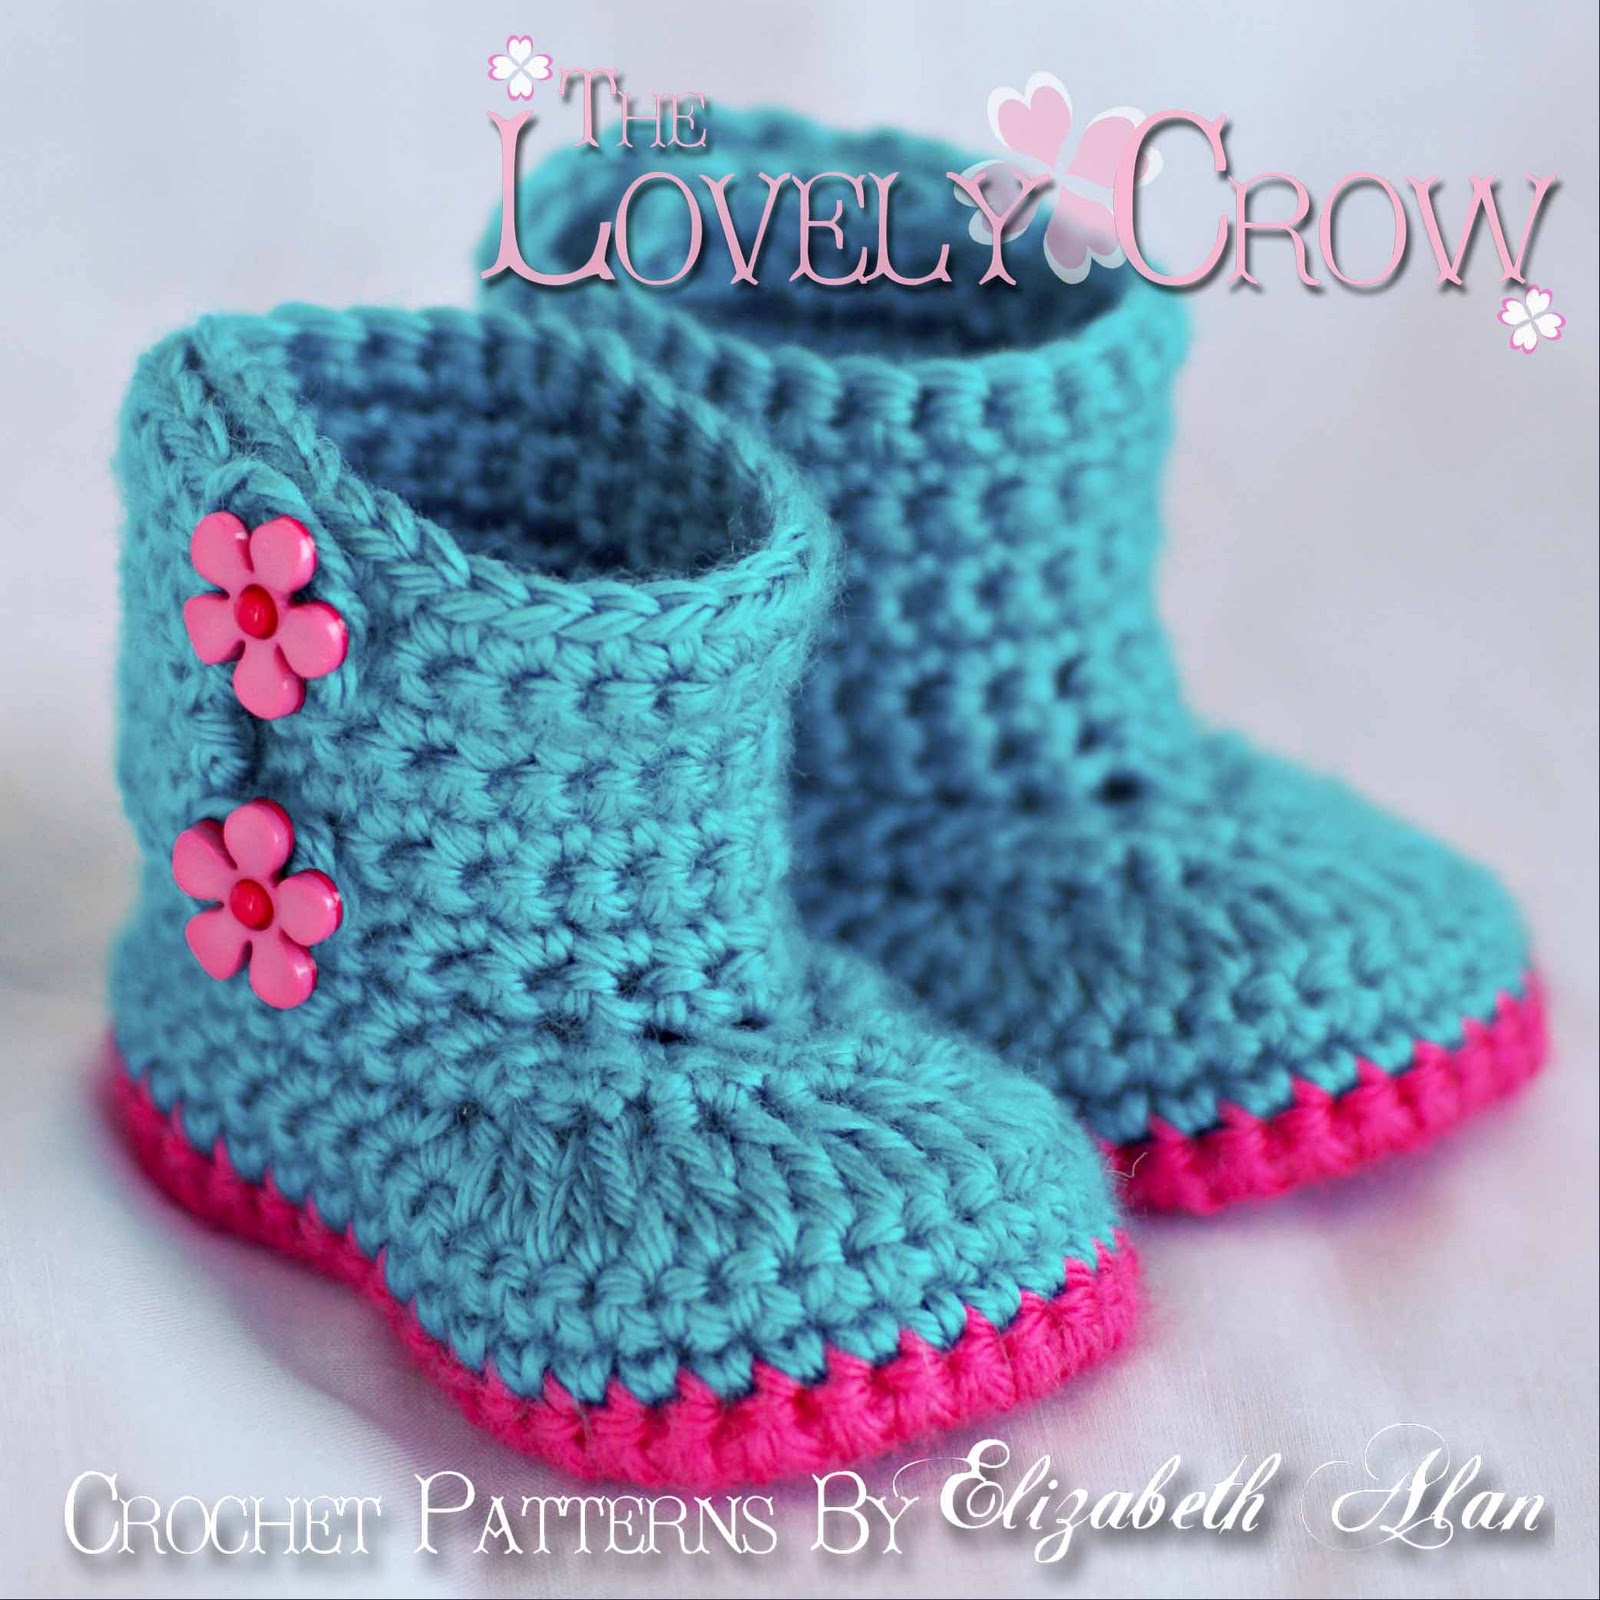 FREE CROCHET PATTERNS NOW - Crochet and Knitting Patterns